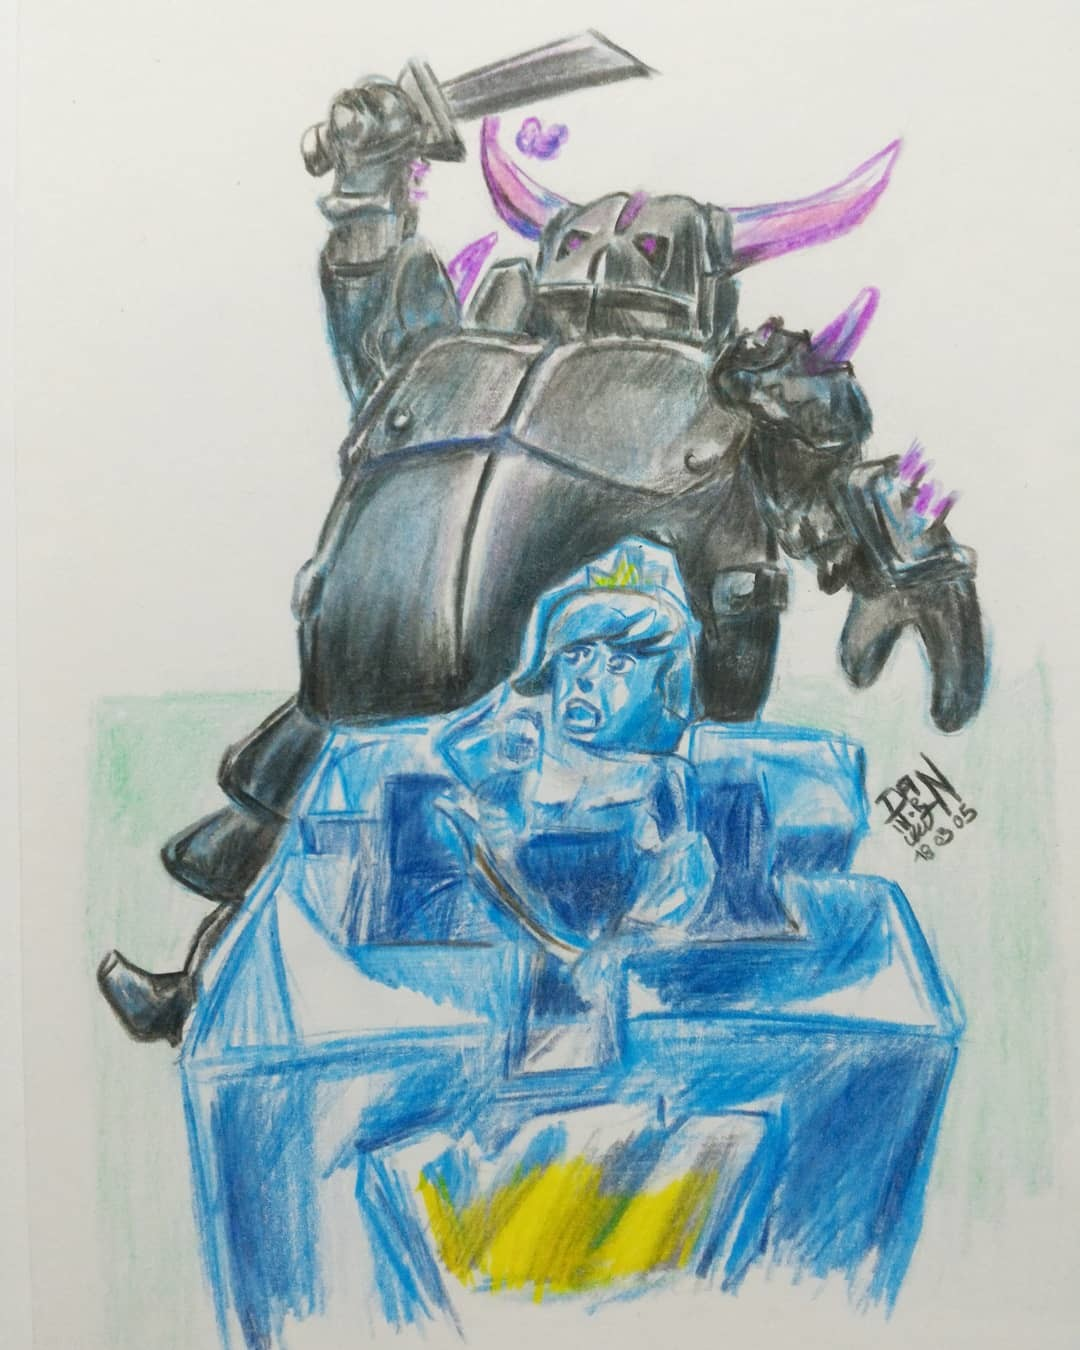 March Of Robots 05 - Pekka, princess - Clash Royale. Colored Pencil